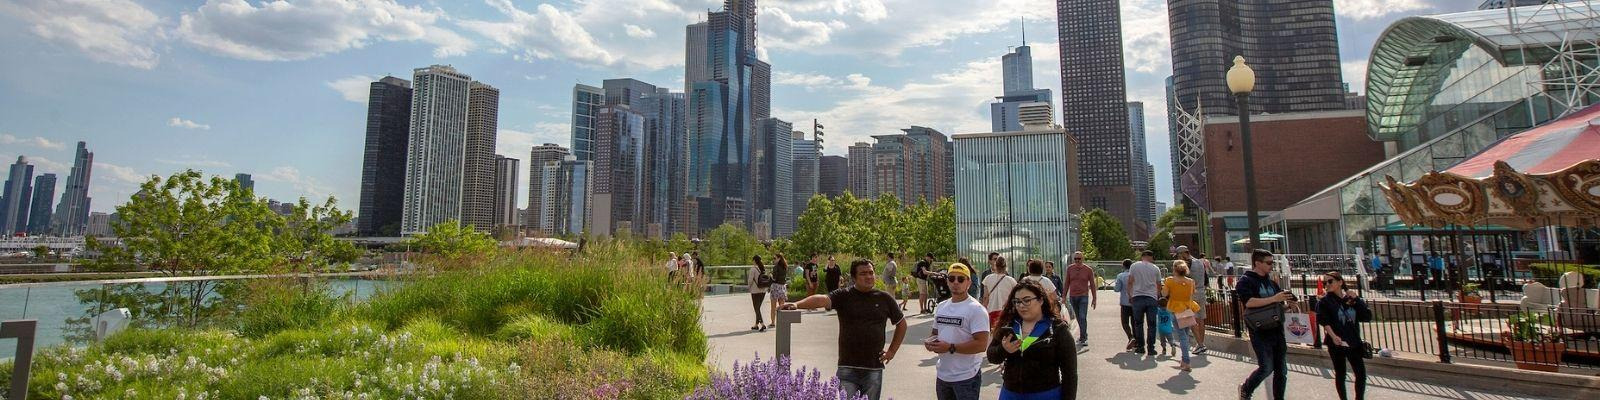 Visiting Chicago for the First Time? Here's What to See and Do